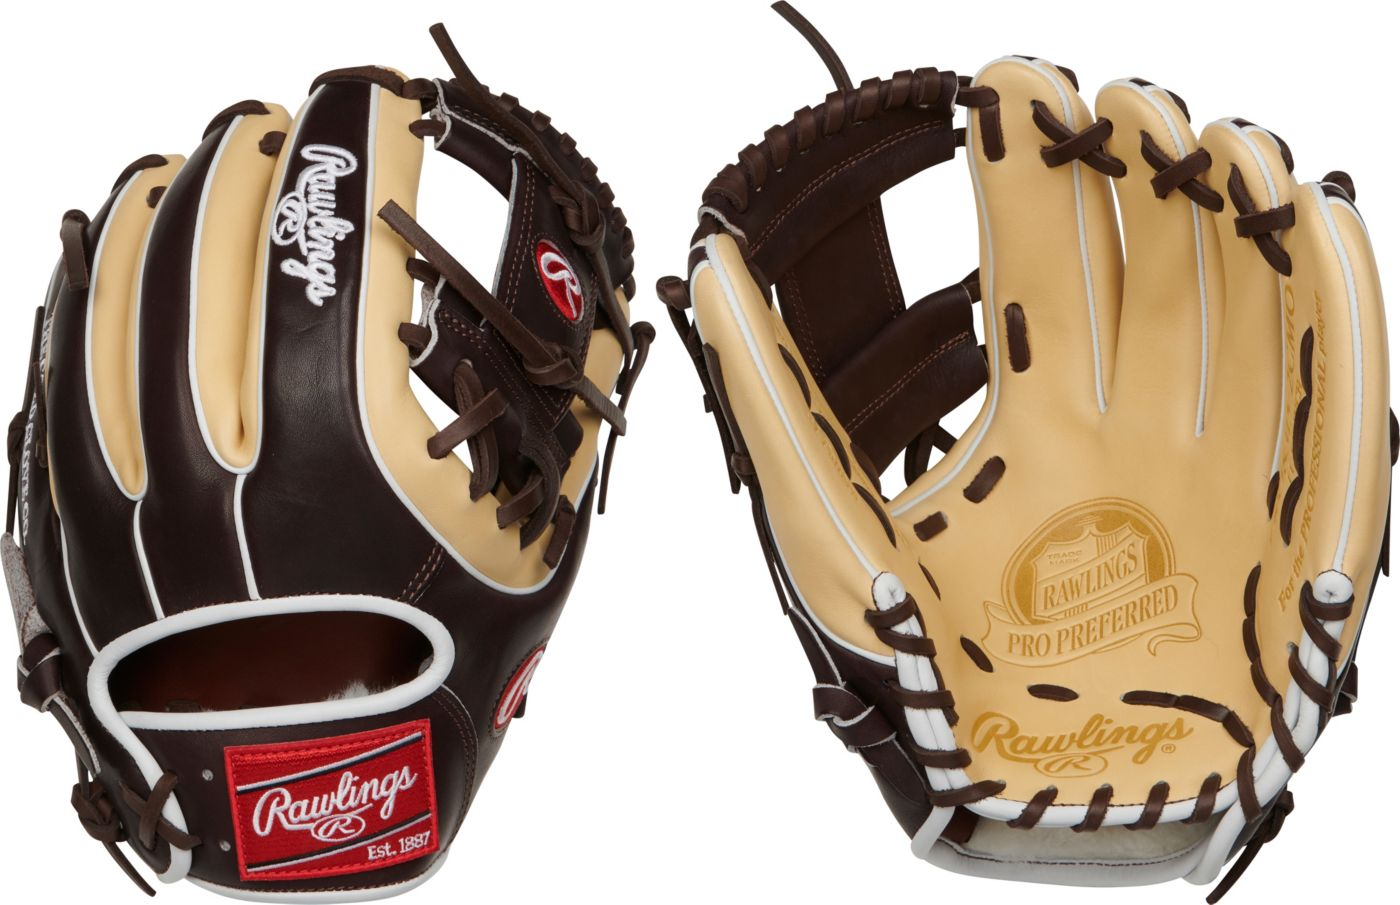 Rawlings 11.75'' Pro Preferred Series Glove 2020